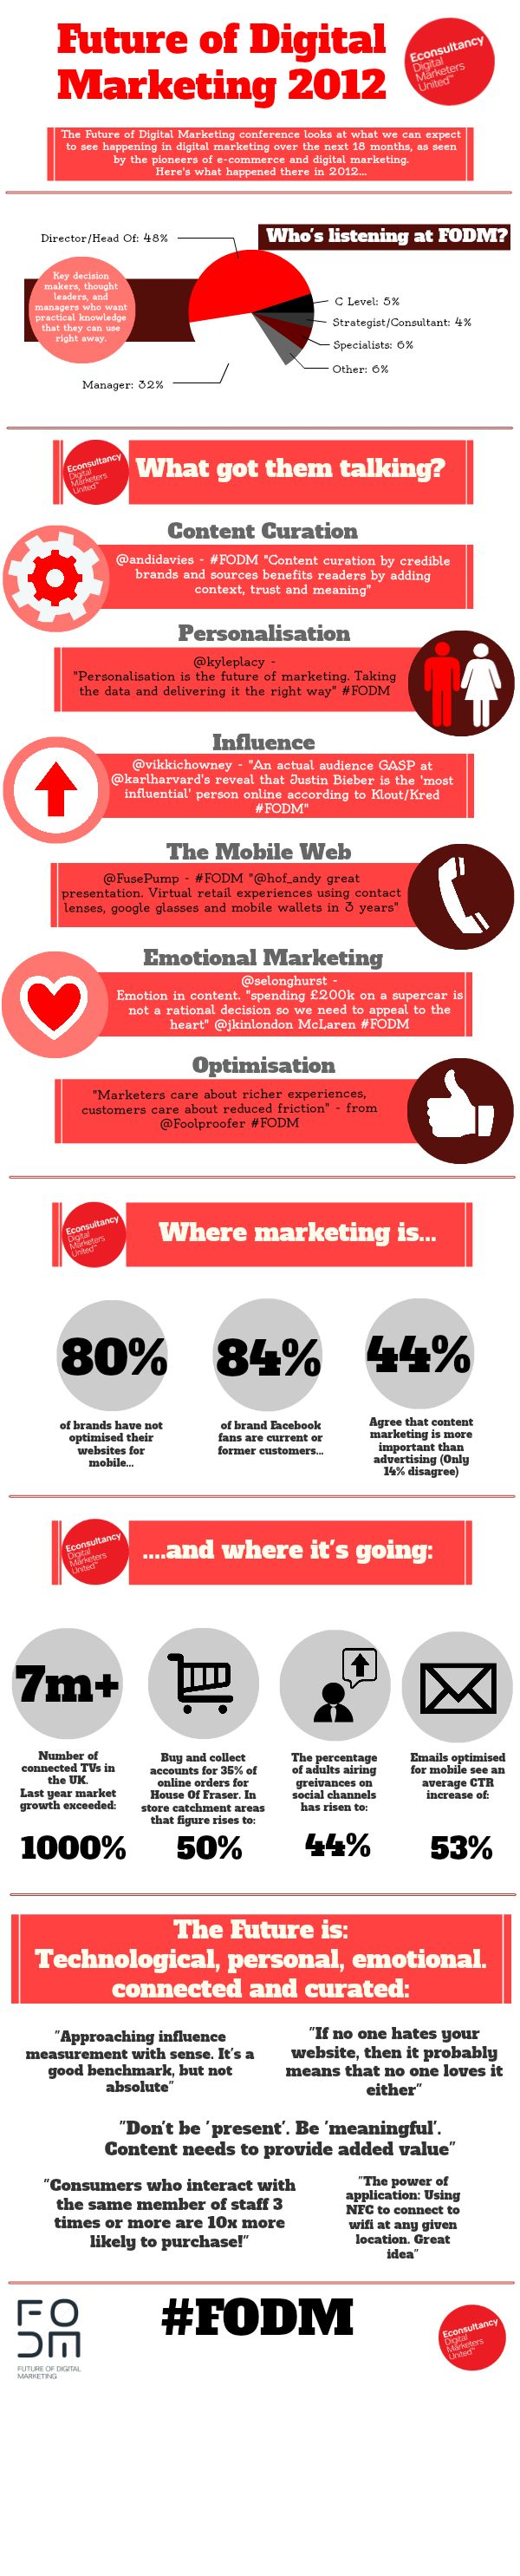 The Future Of Digital Marketing #infographic @Econsultancy